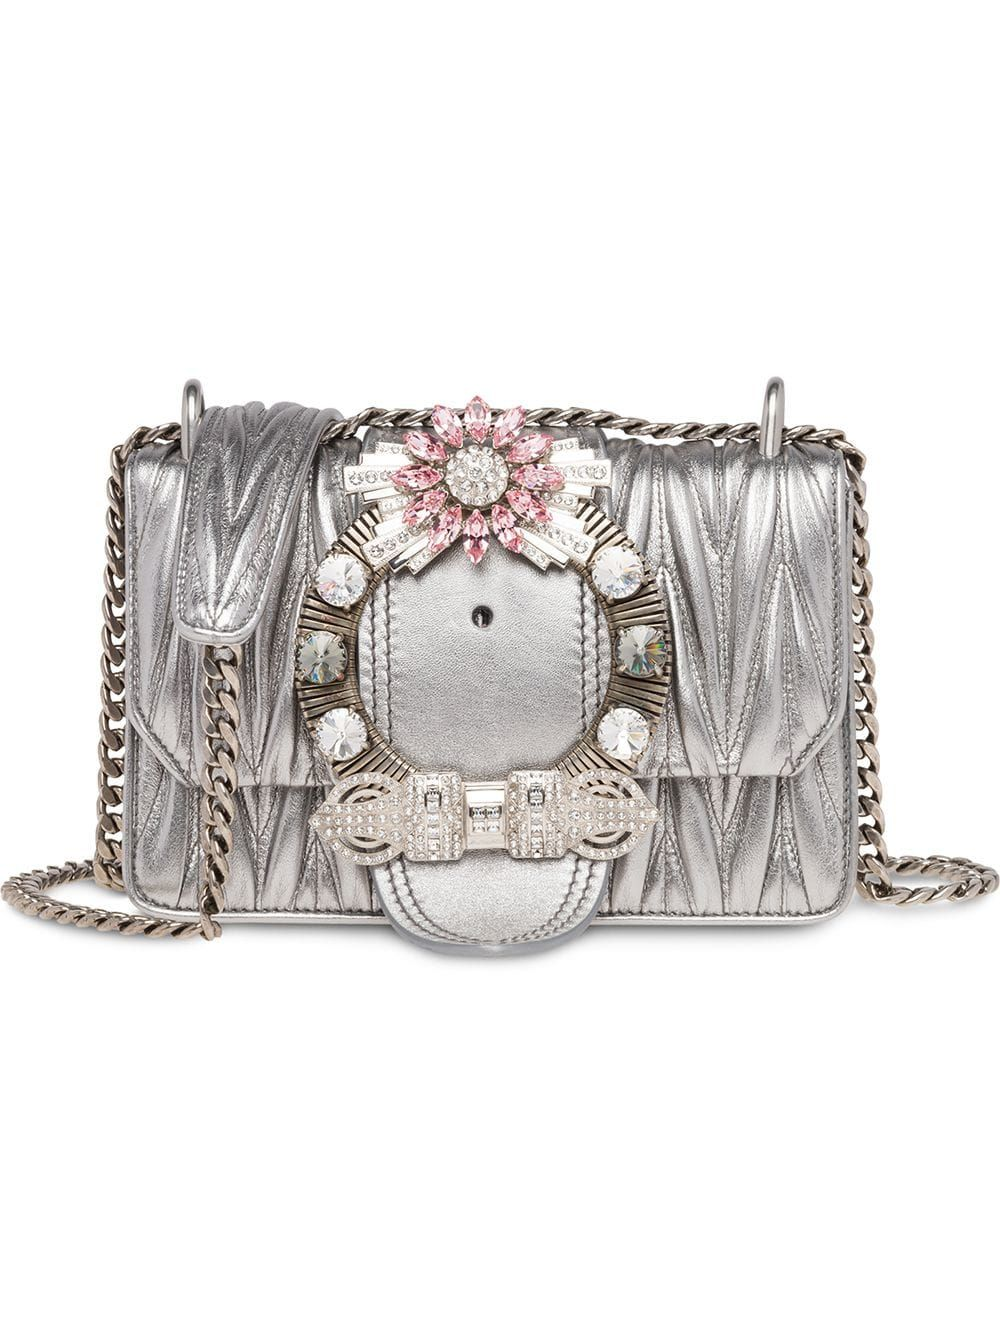 1f3167e3168 Miu Miu Lady matelassé crossbody bag - Silver in 2019 | Products ...